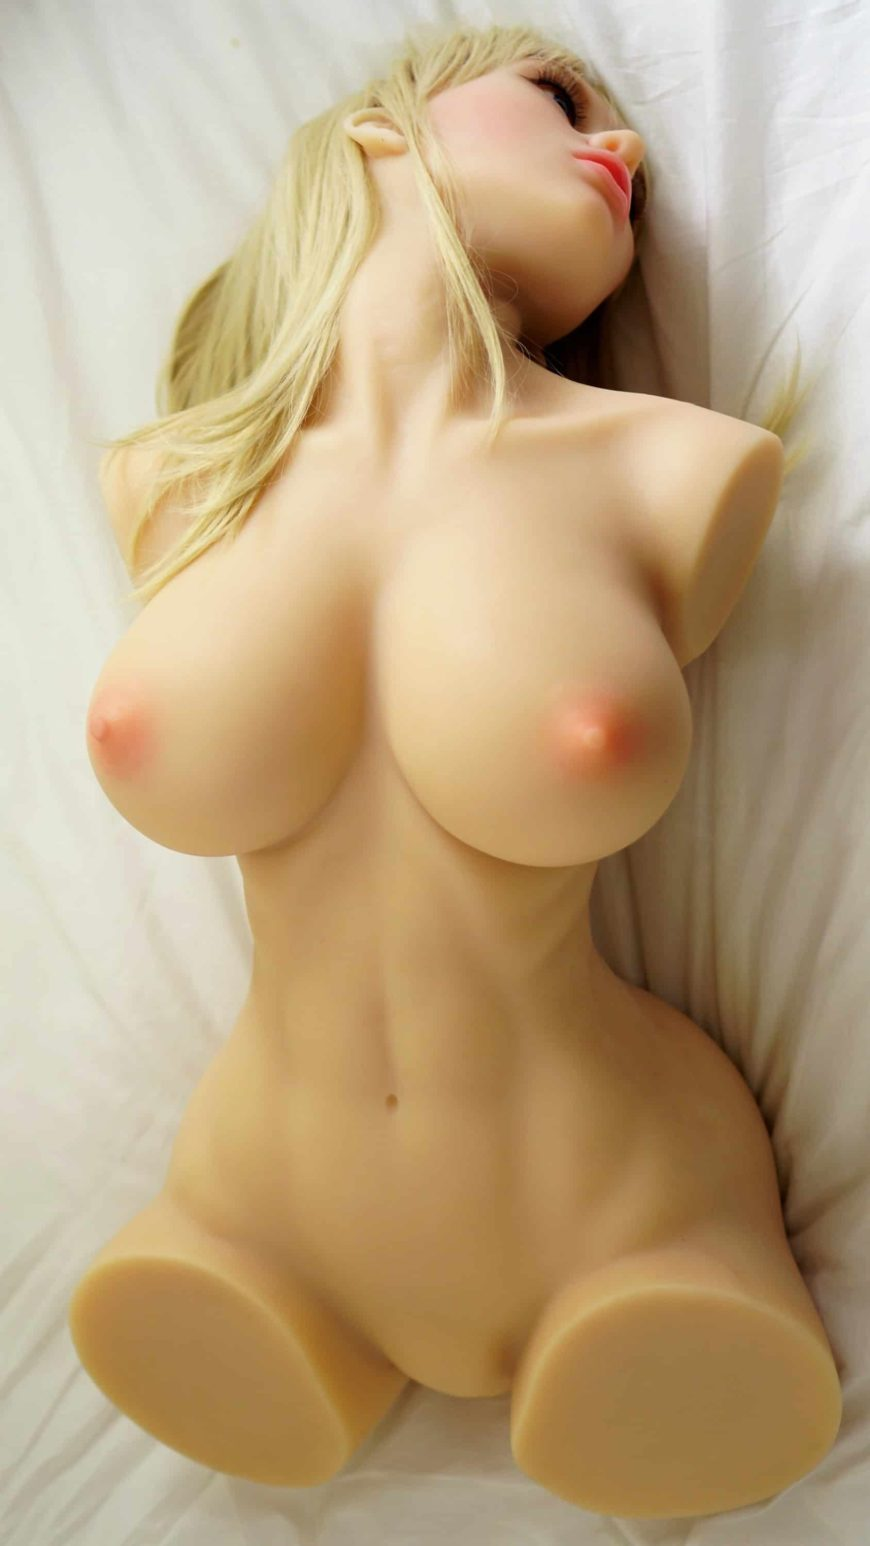 Sex-Doll-Sarah-no-limbs-posing-nude-1 (12)